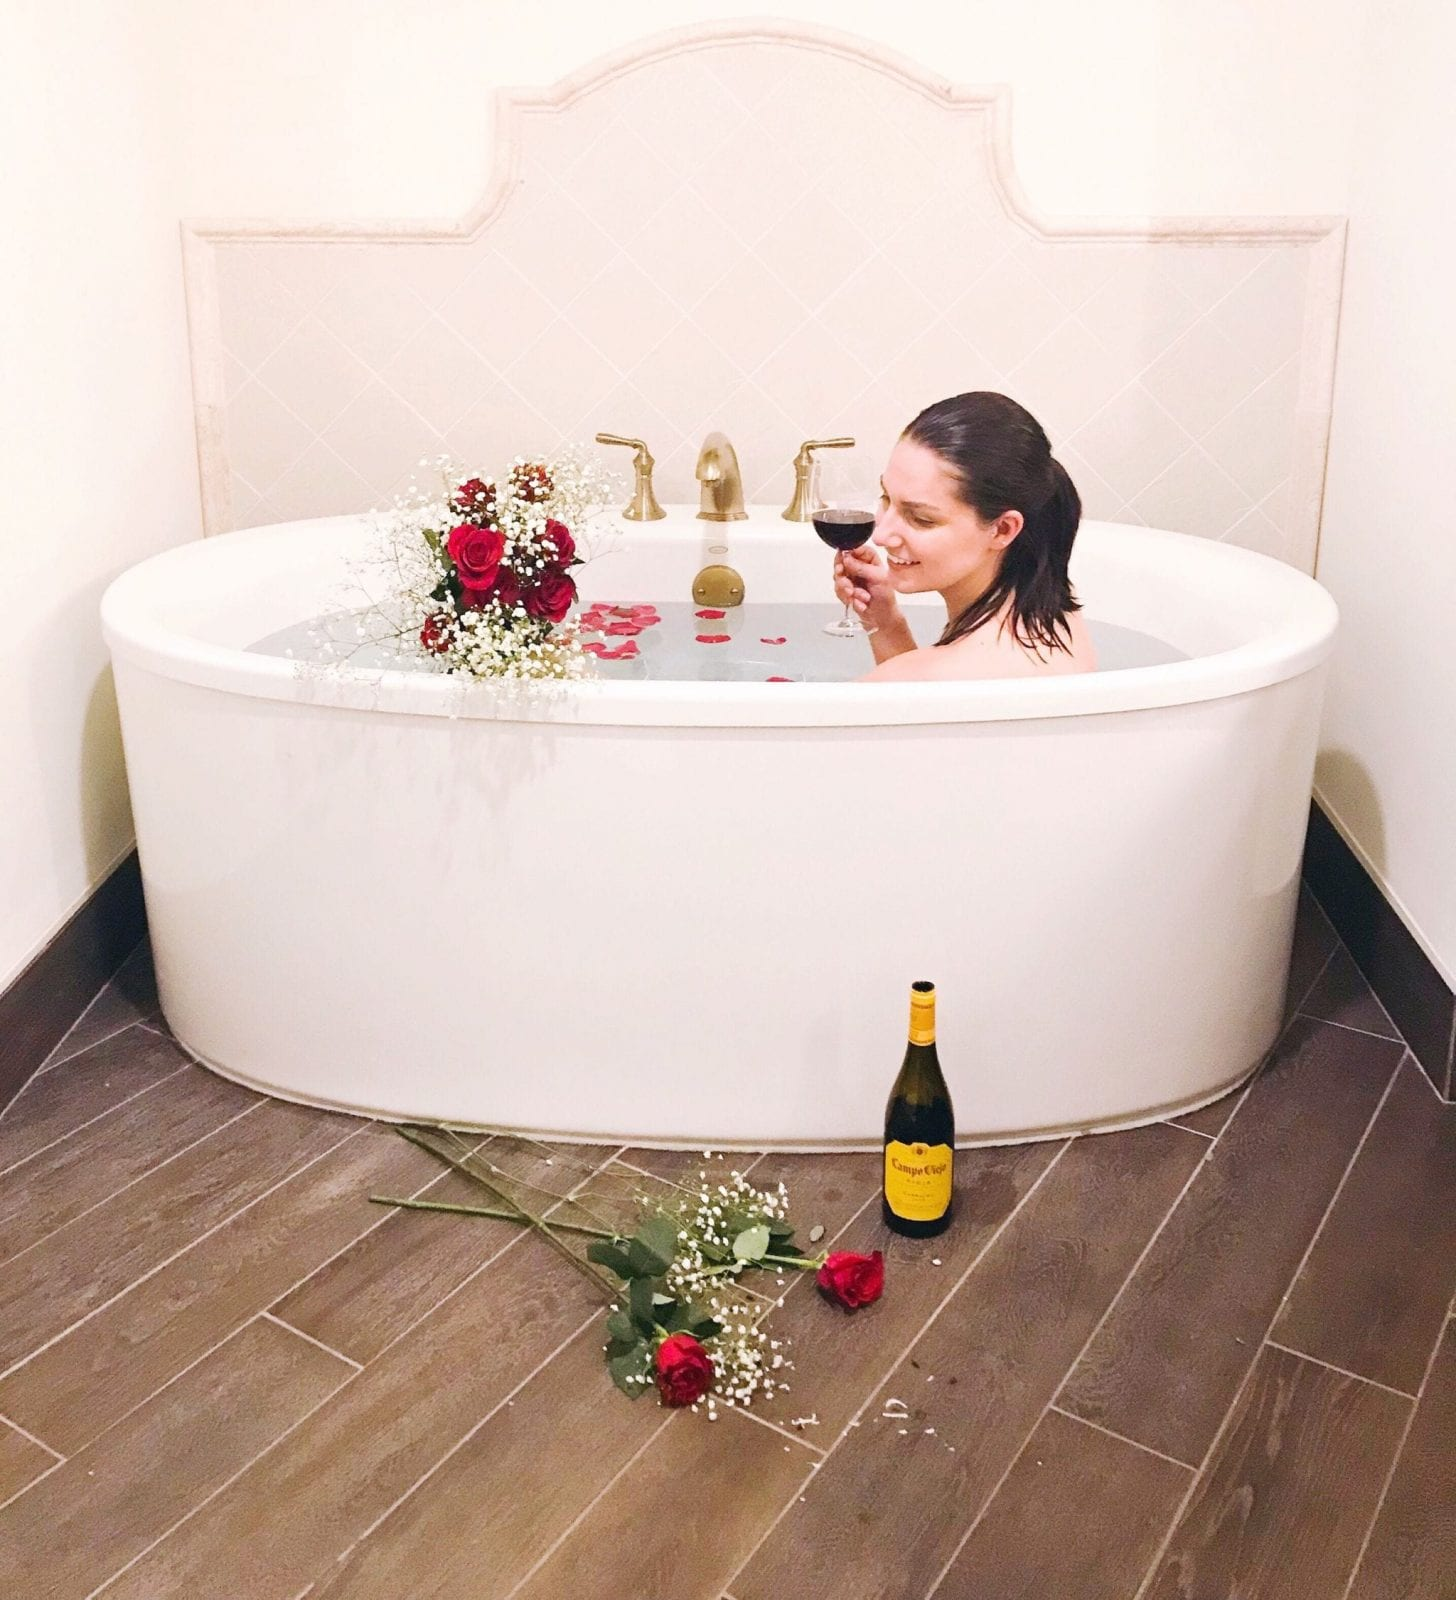 Enjoying the floating tub at the Sedona Rouge Hotel & Spa.